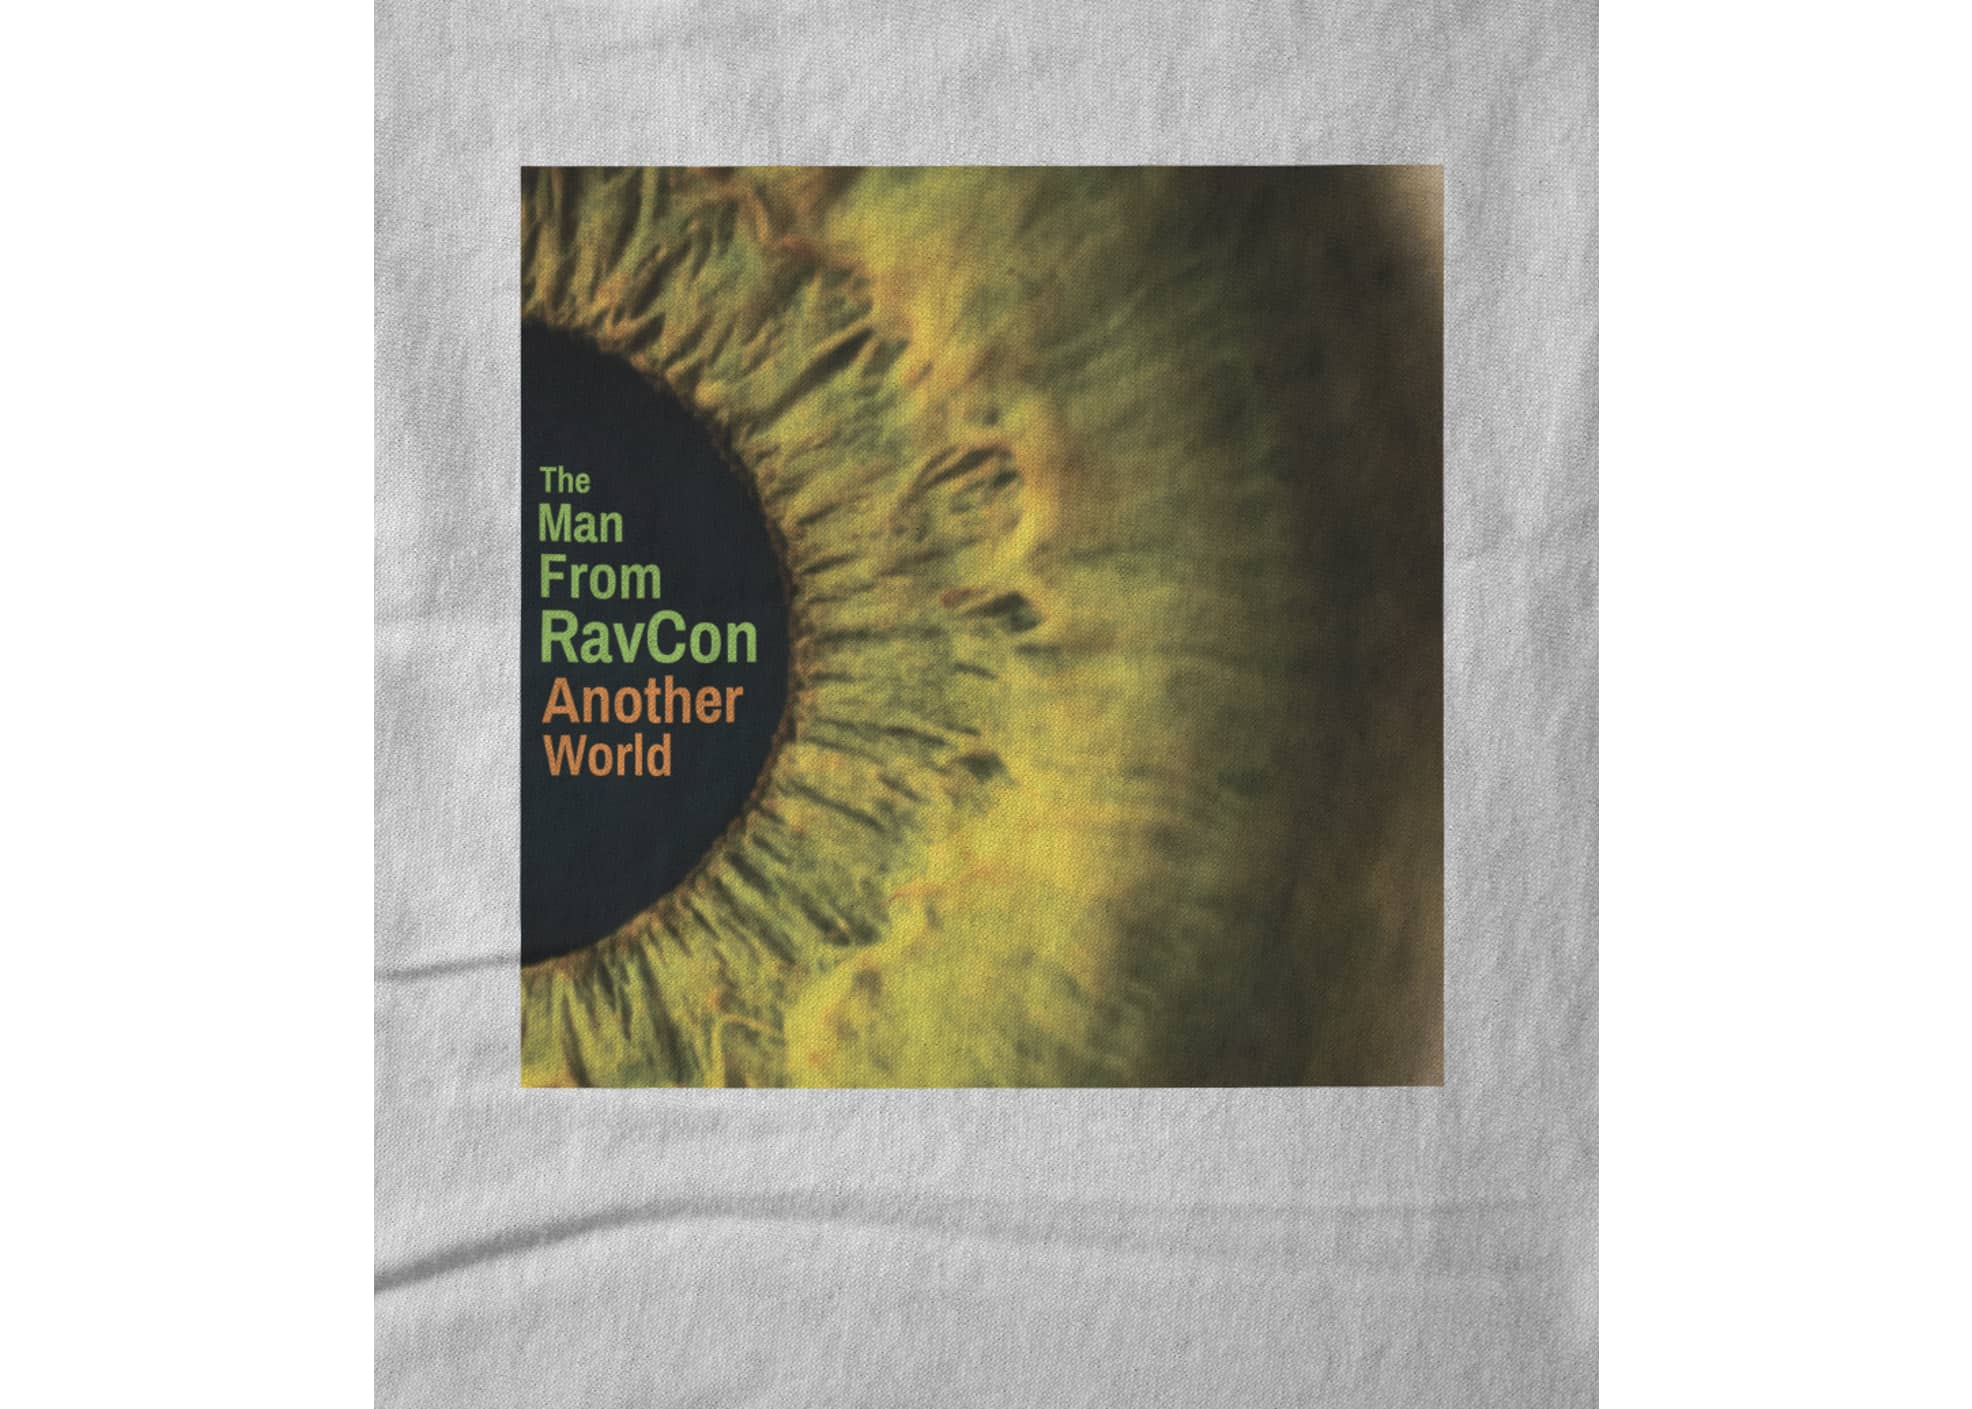 The man from ravcon another world 1525447049